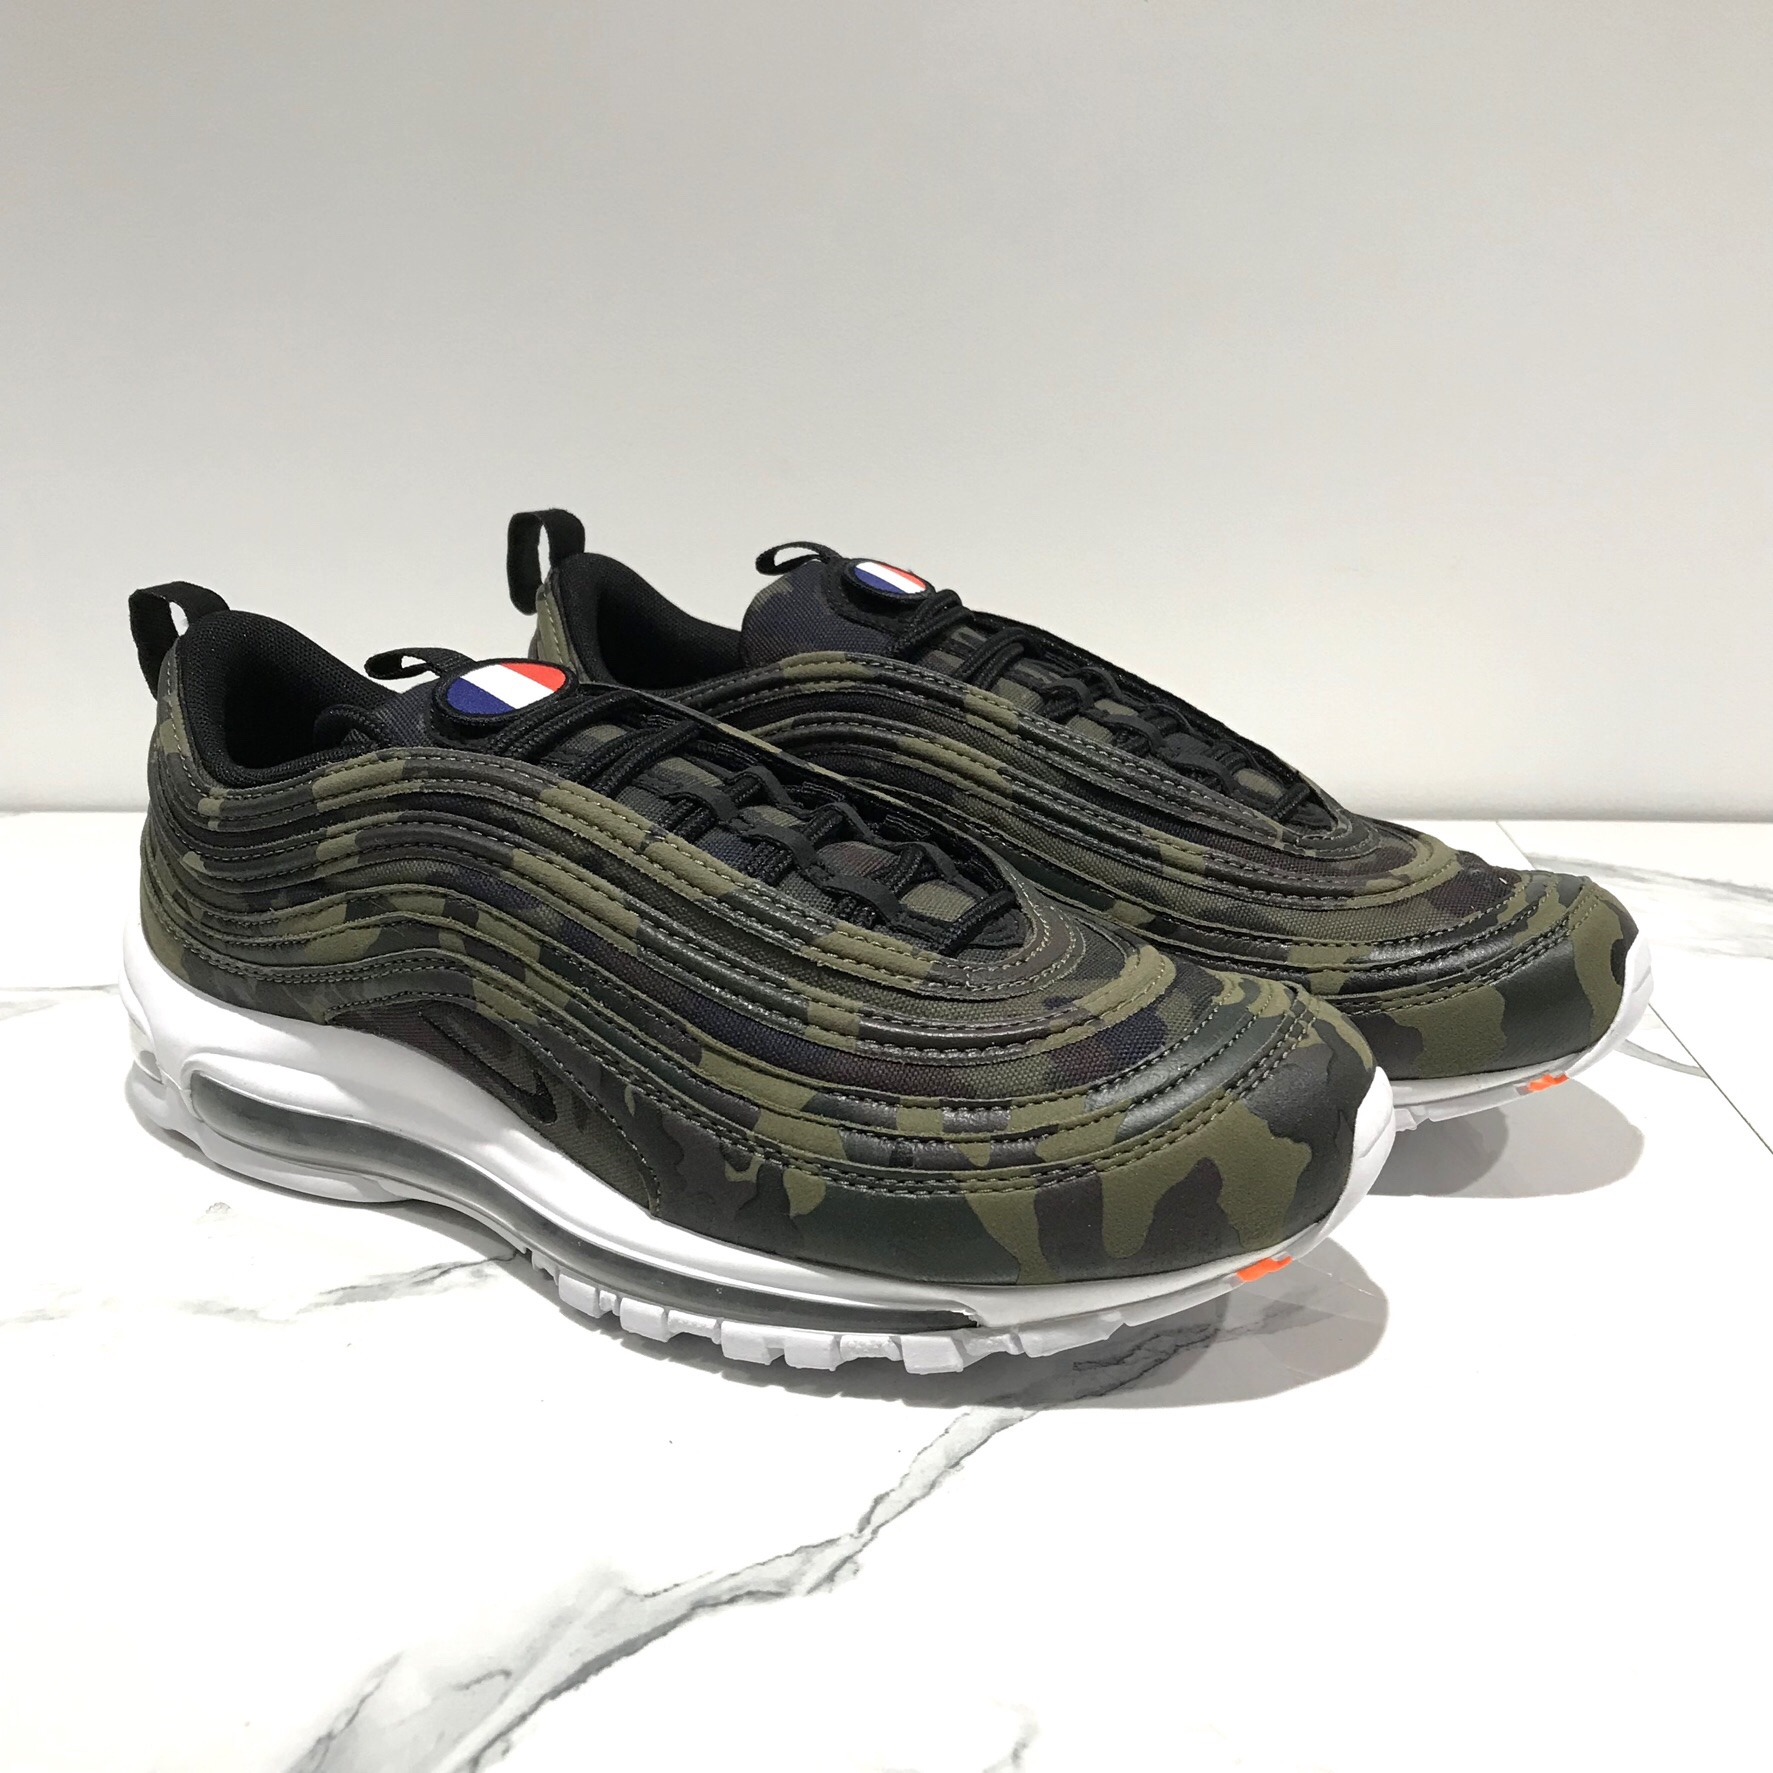 Nike Air Max 97 Premium International Air, French Depop